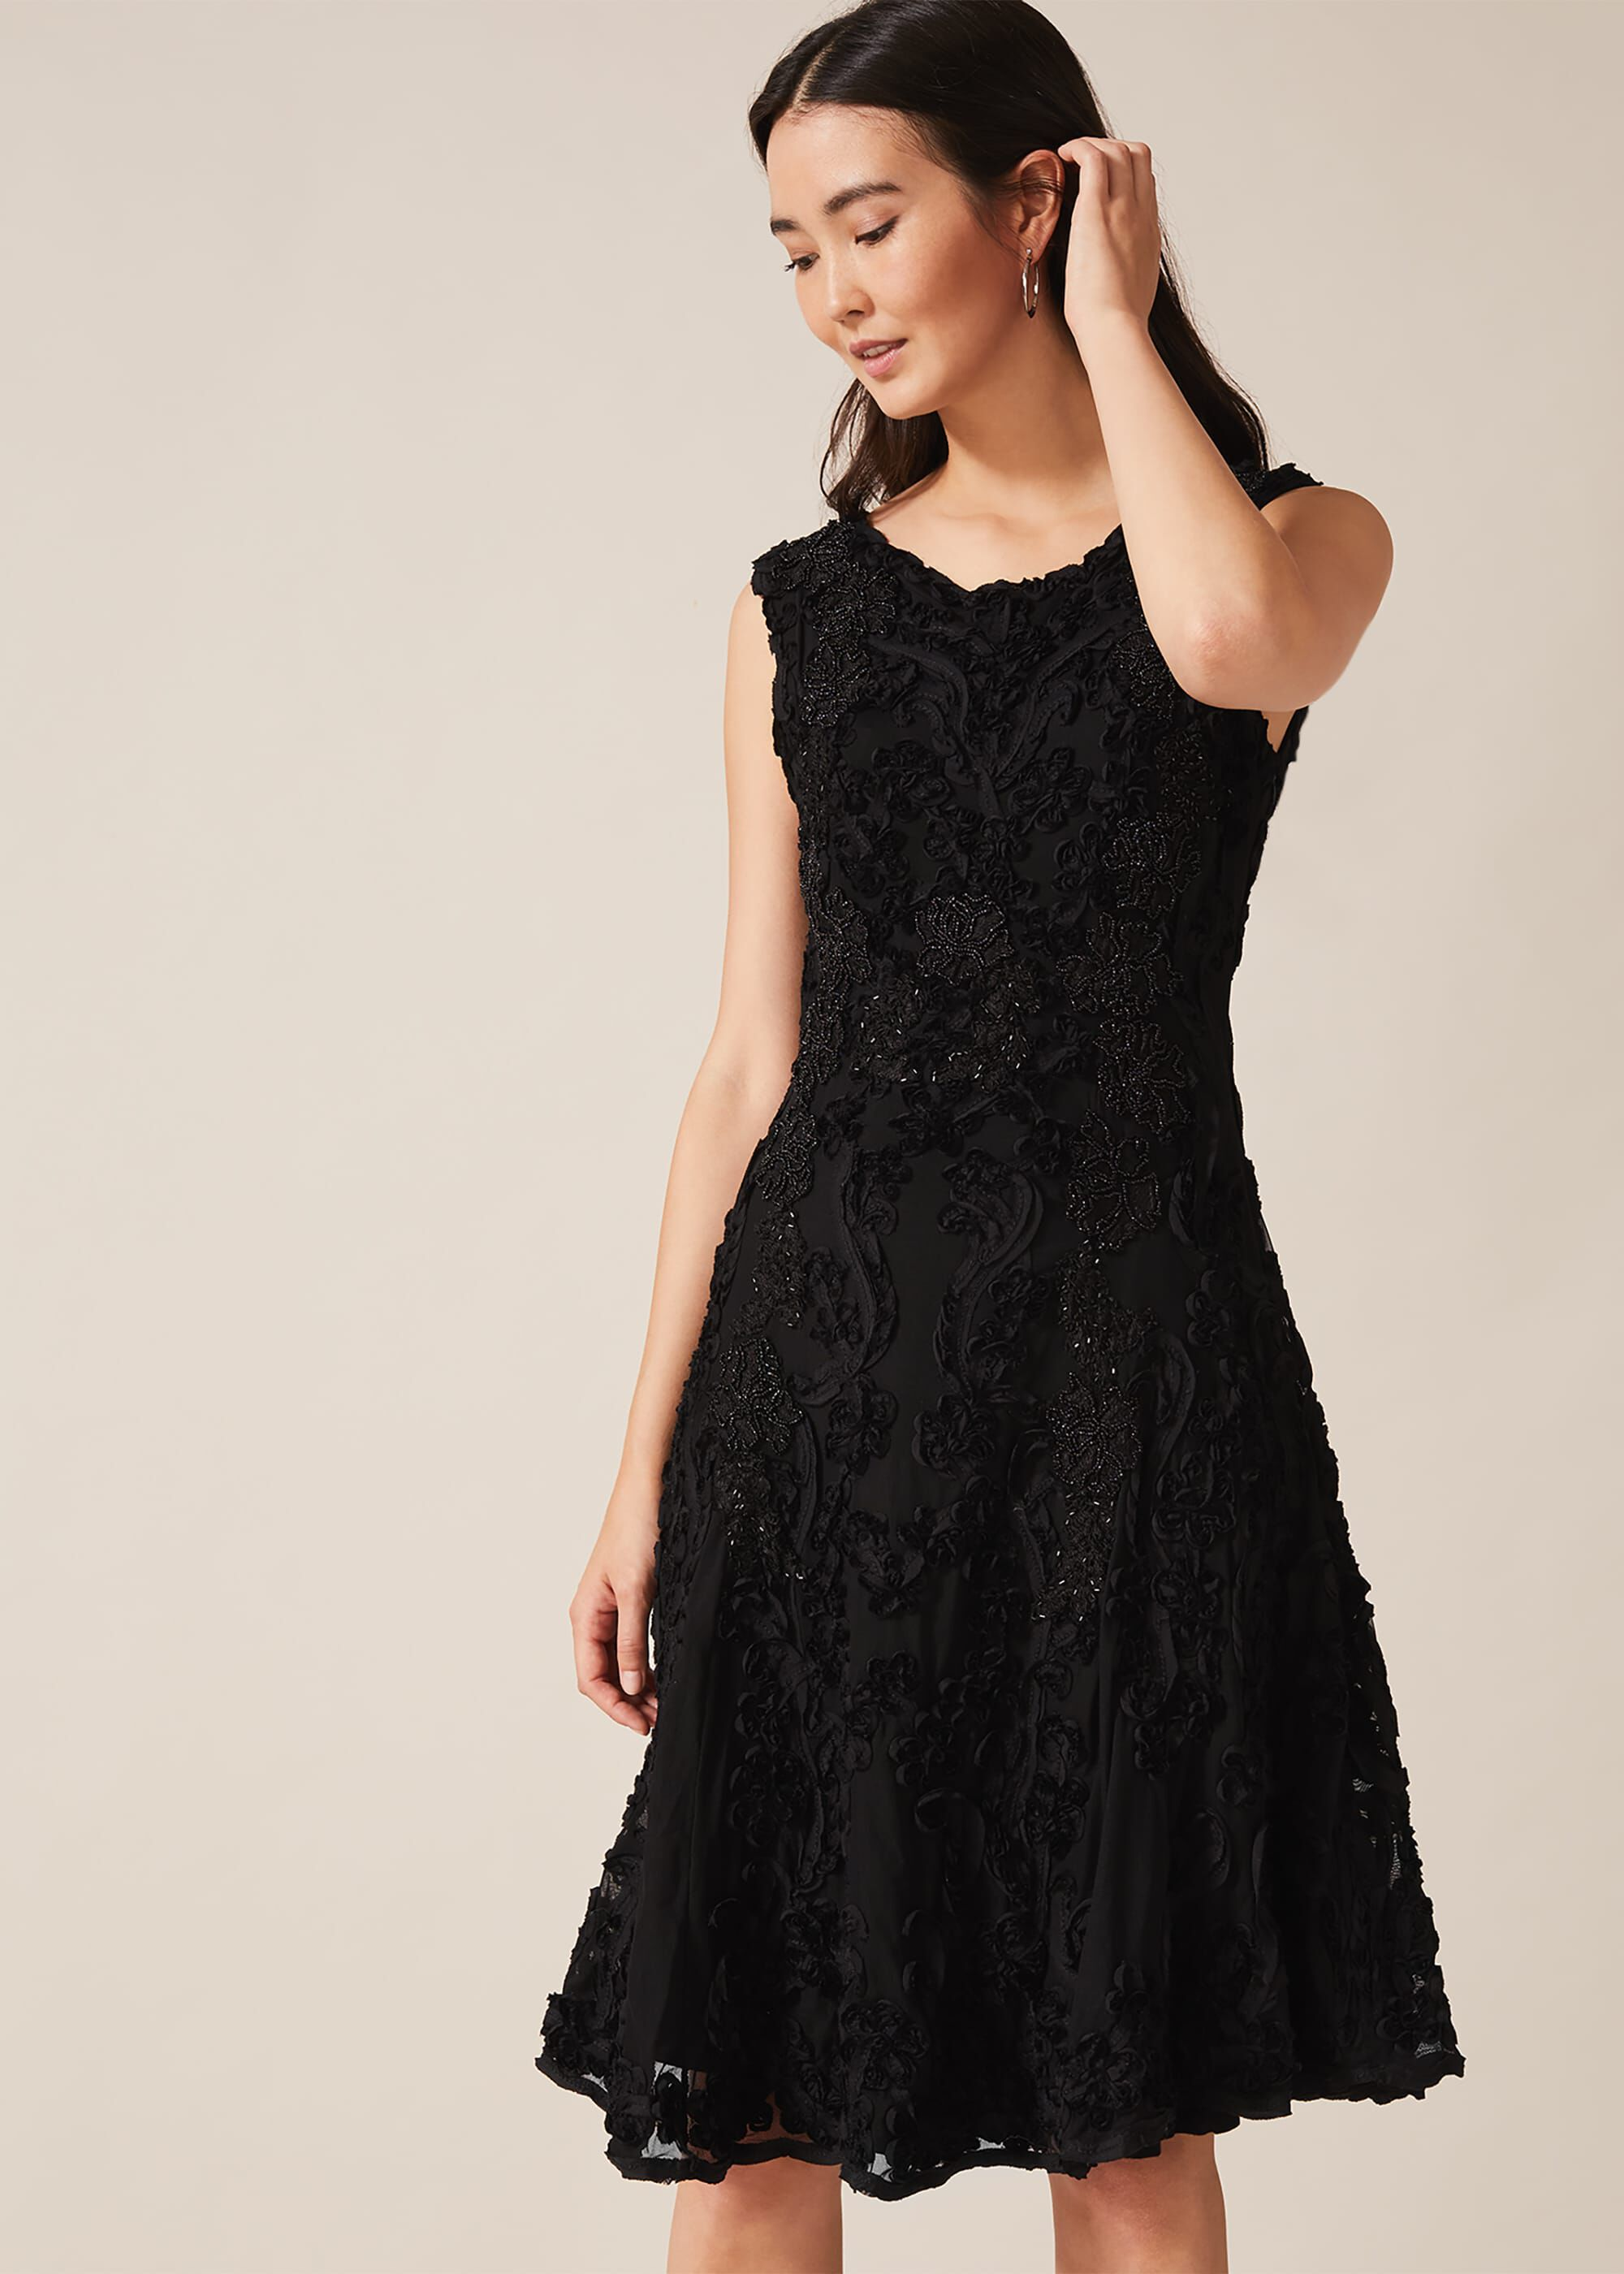 Phase Eight Penelope Tapework Lace Dress, Black, Fit & Flare, Occasion Dress